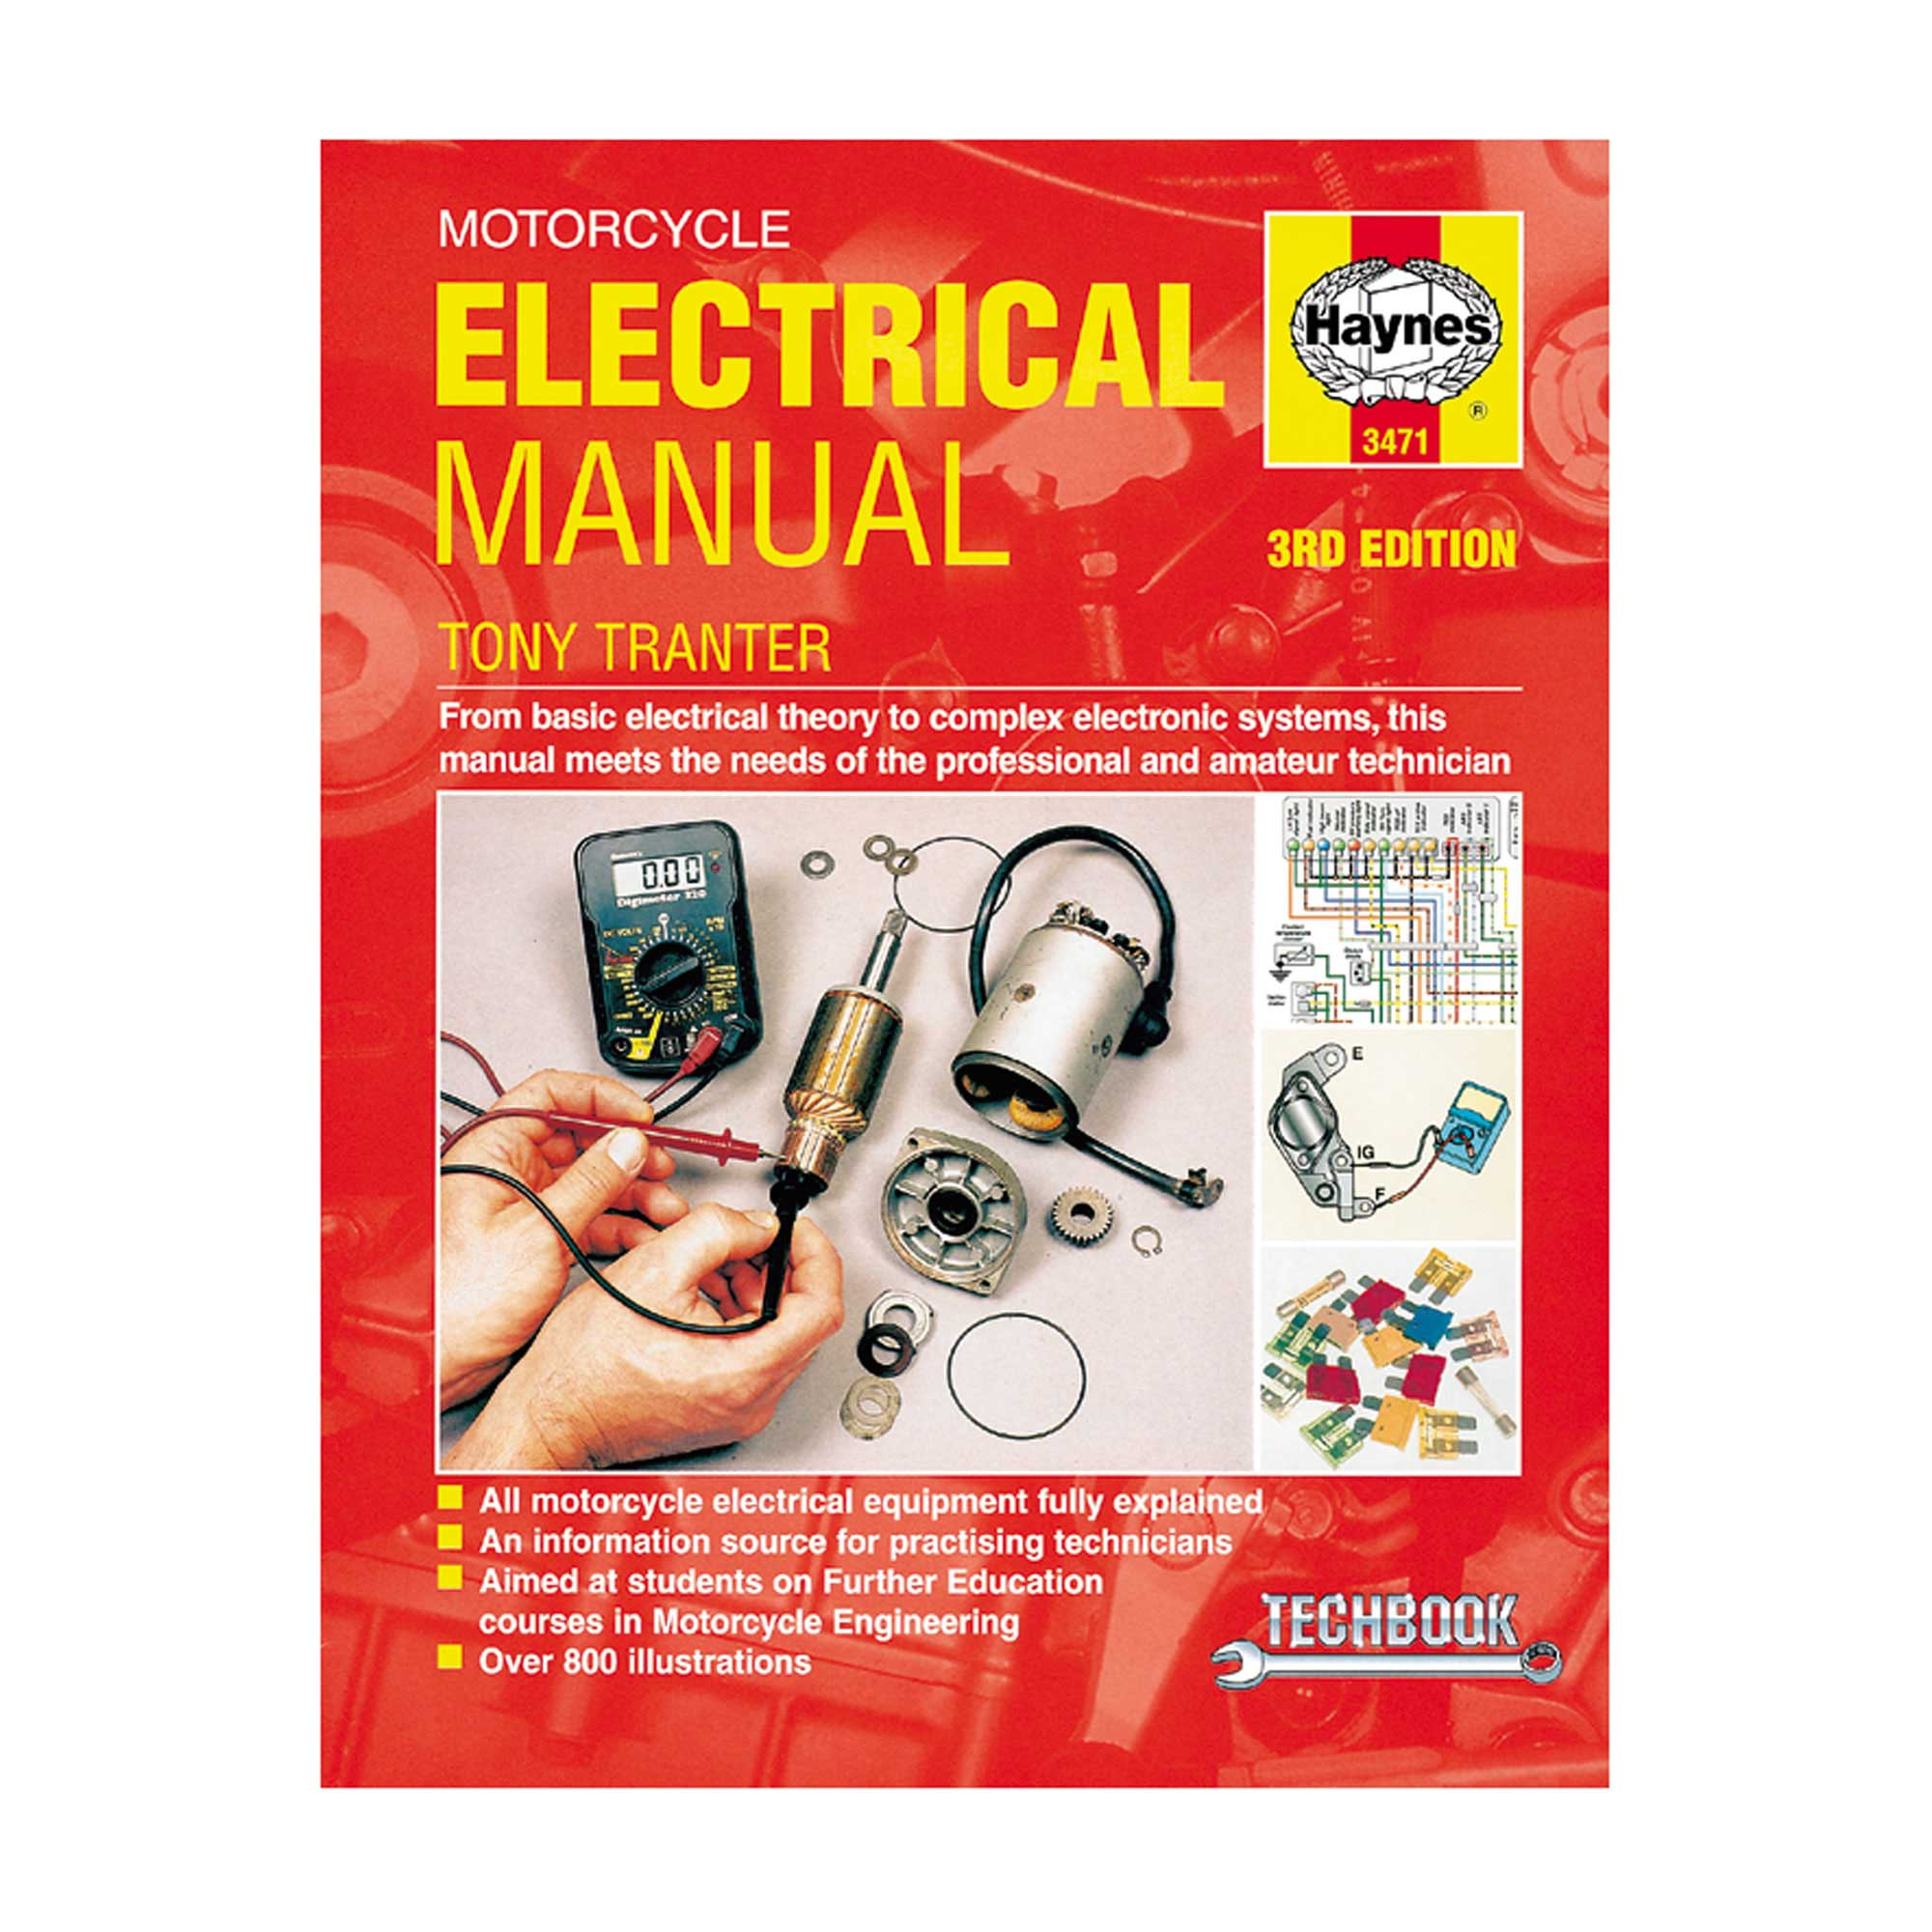 Campervan Electrical System An Illustrated Guide Manual Guide